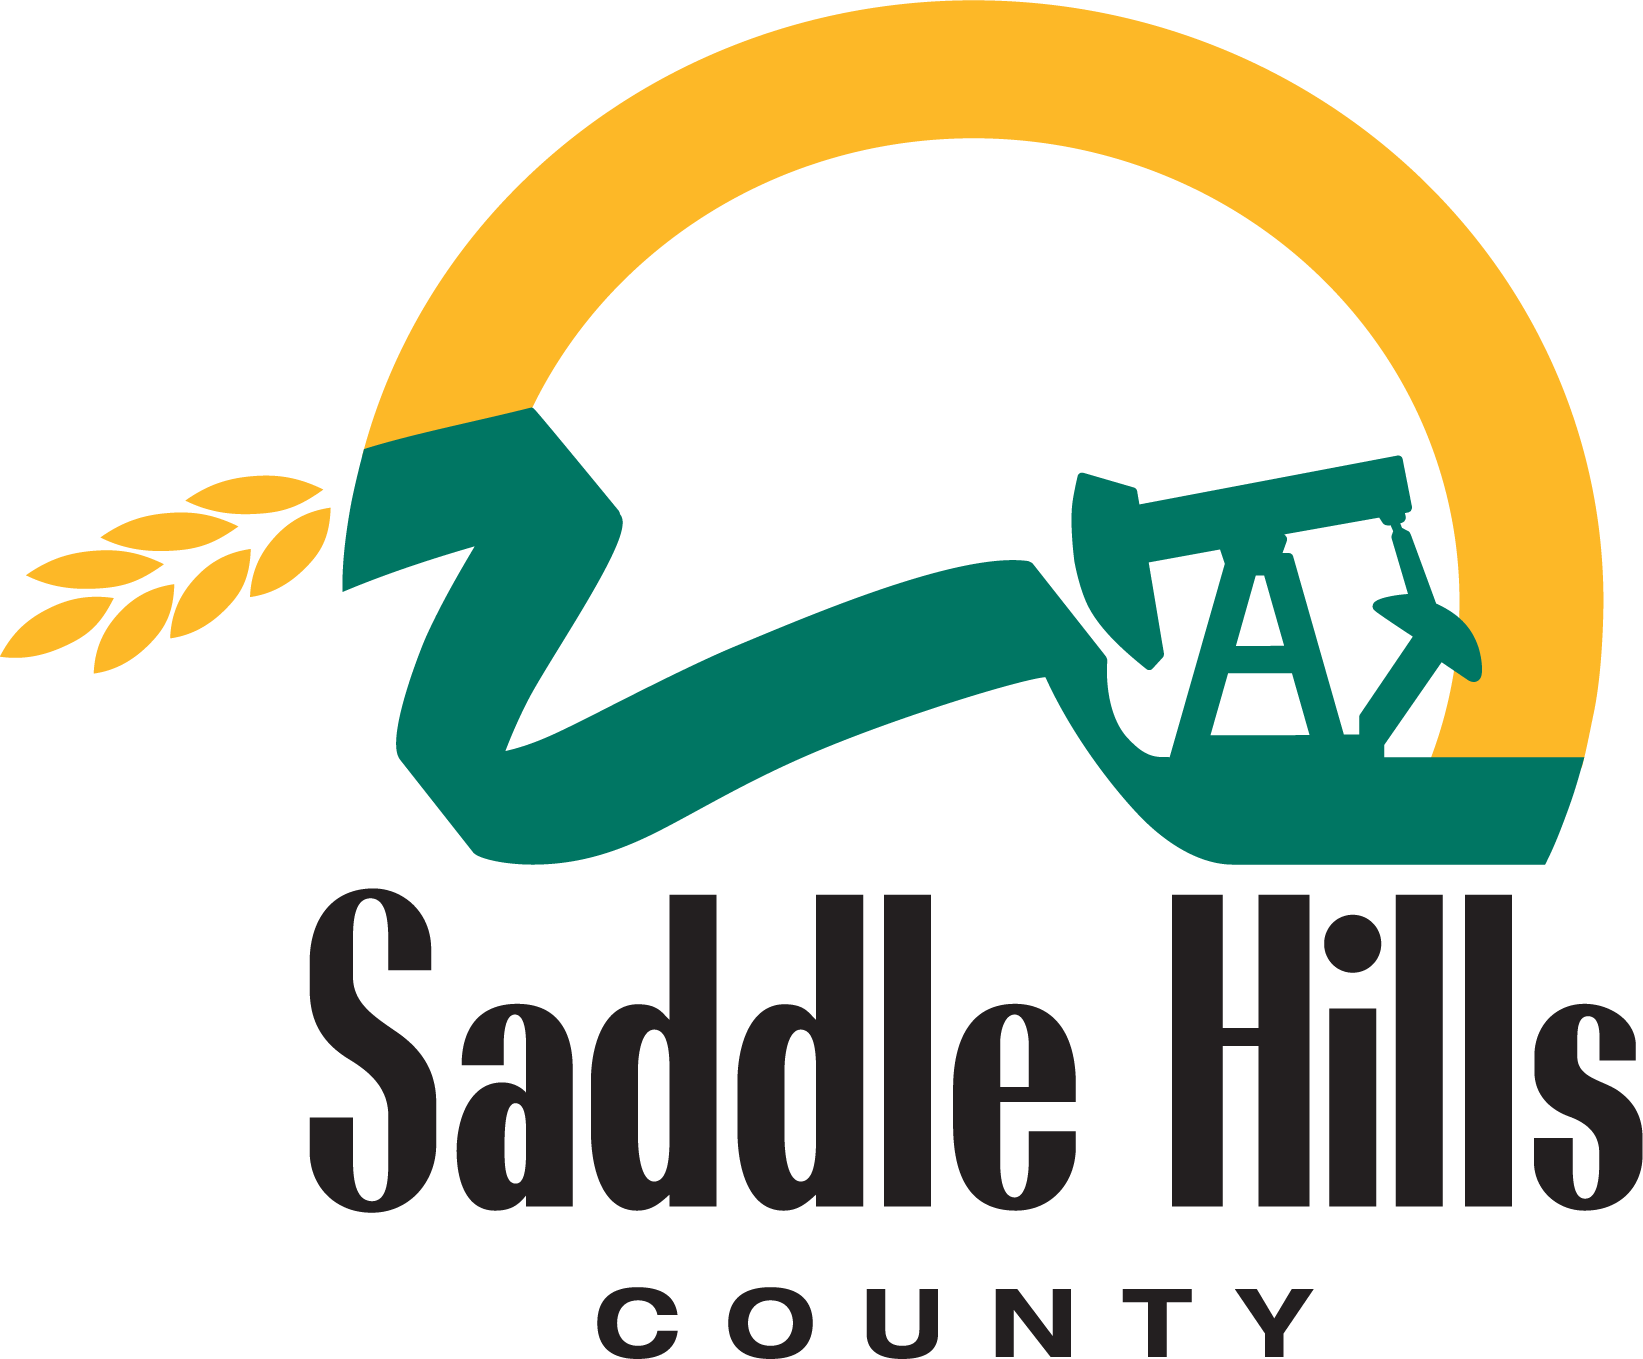 Image of Saddle Hills County logo